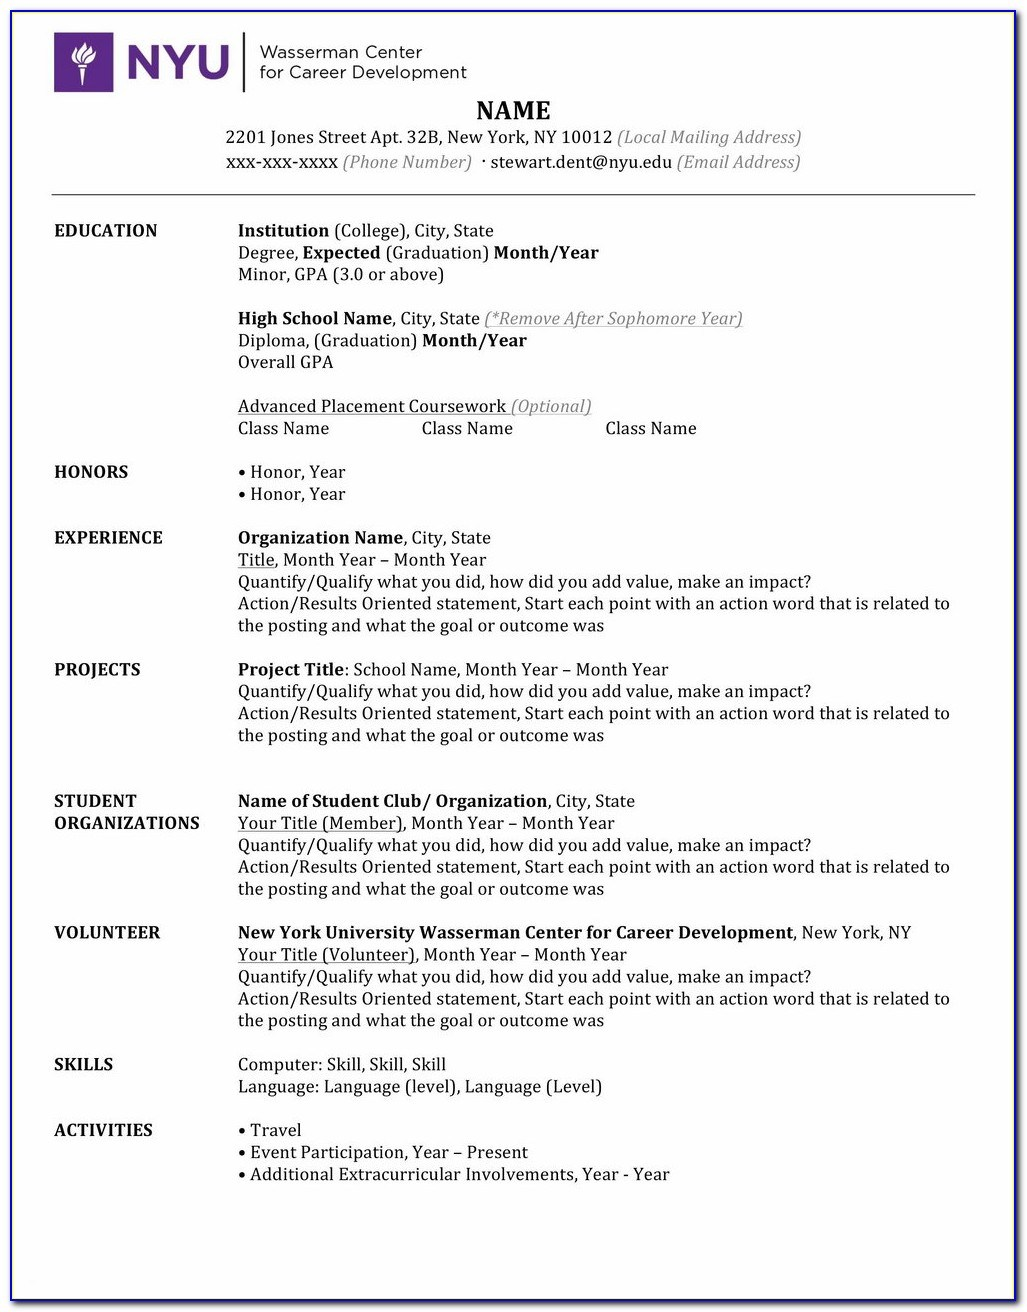 free resume builder no payment required vincegray2014 fees best examples redesign Resume Free Resume Builder No Fees